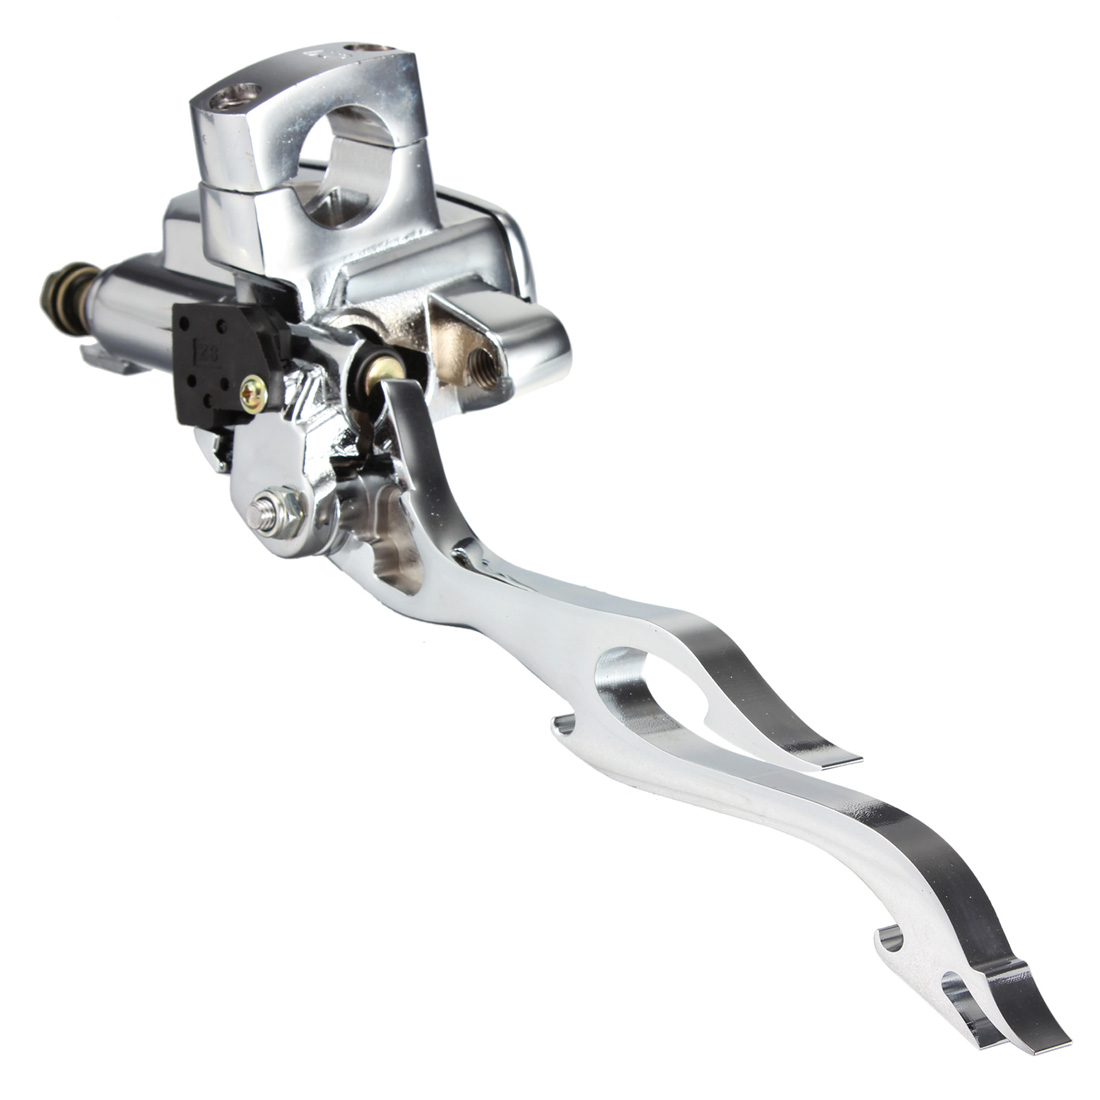 1 inch 25mm Chrome Motorcycle Flame Brake Master Cylinder Right For Harley chopper